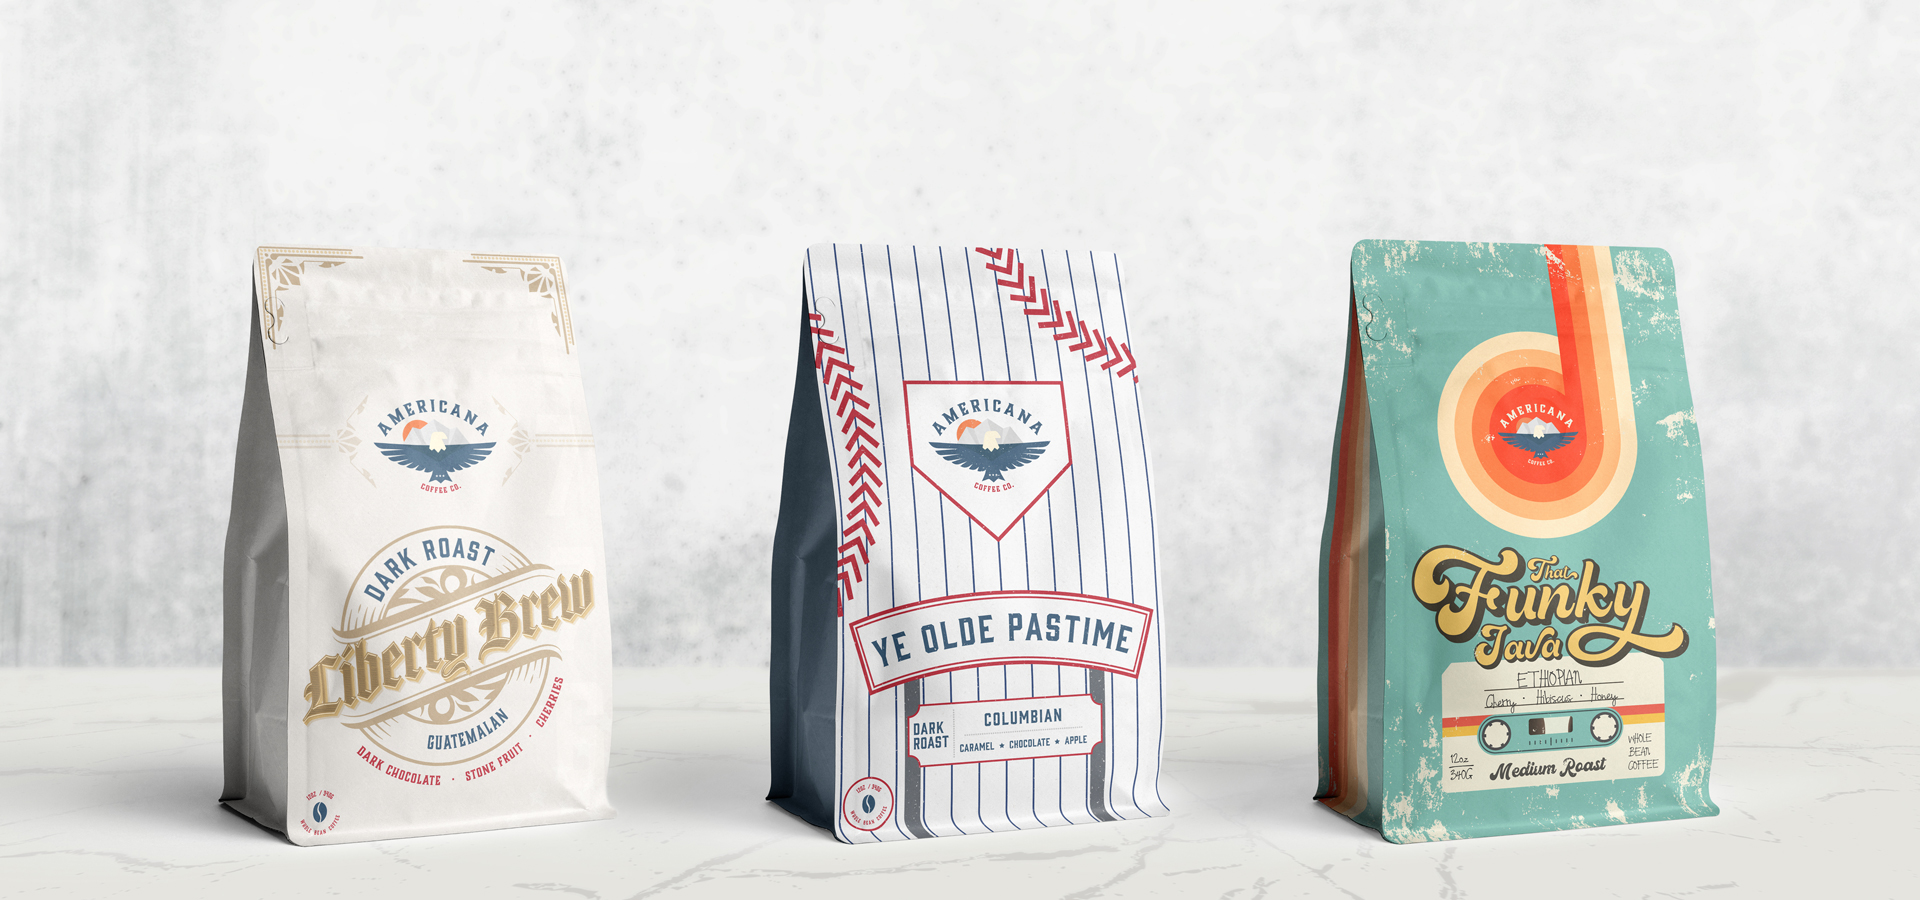 Phoenix Packaging Design Agency - Coffee Bag Design and Branding - Lineup